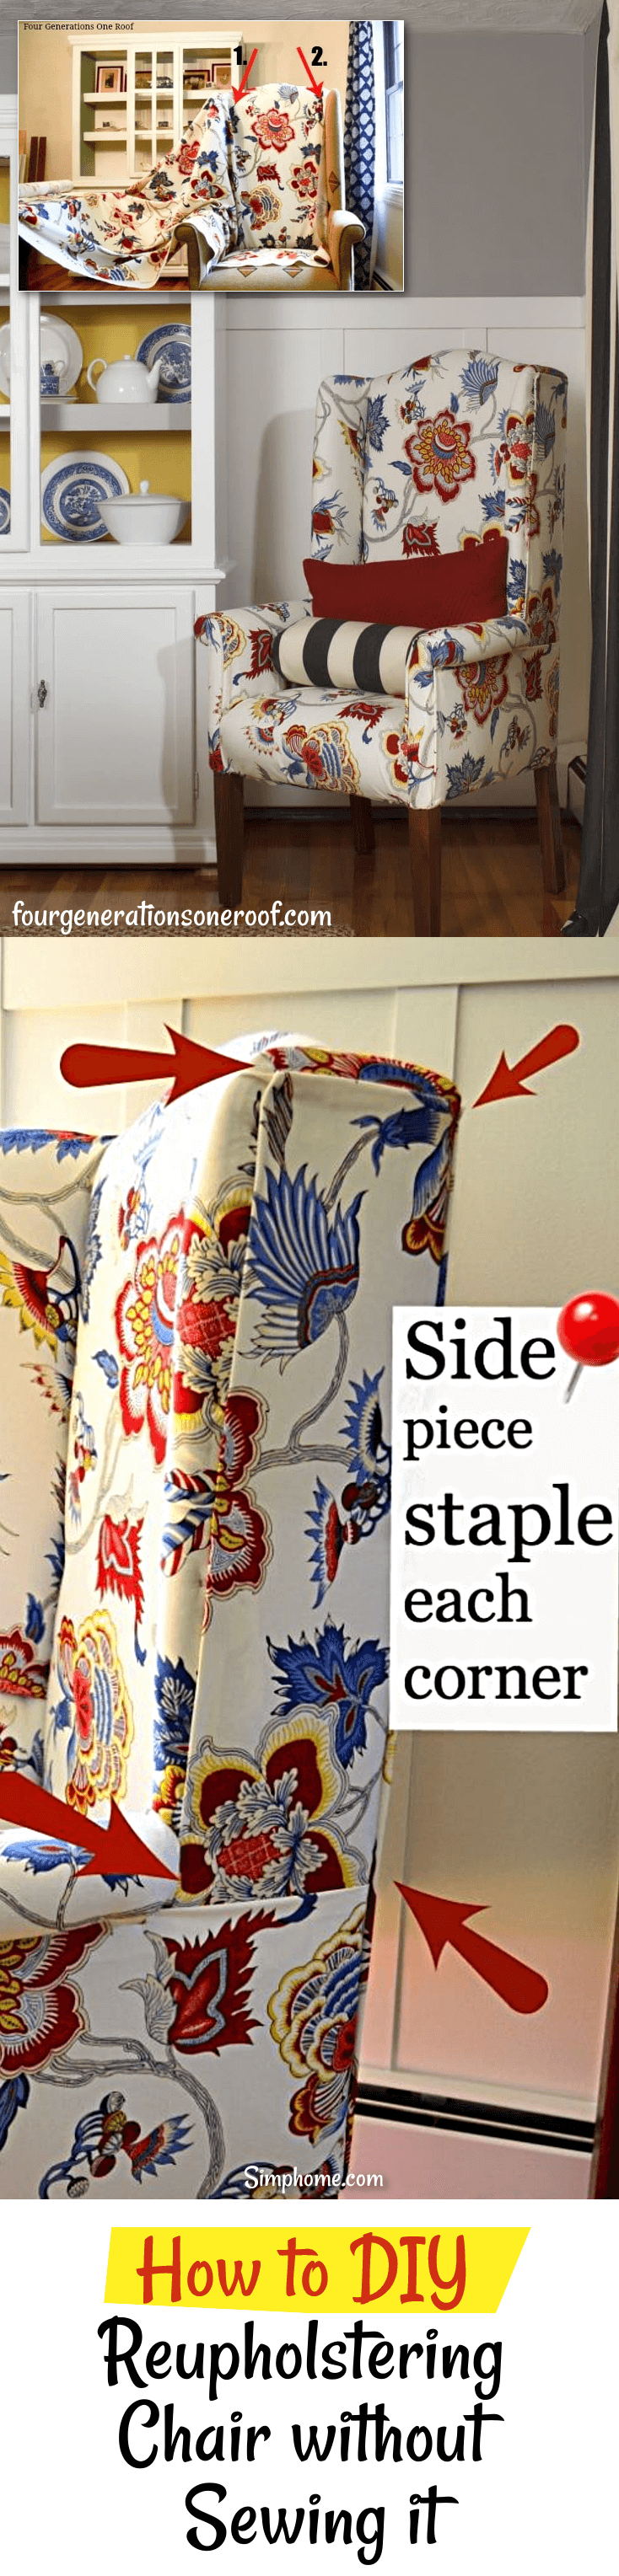 How to DIY Reupholstering Chair without Sewing it 7 simphome com p